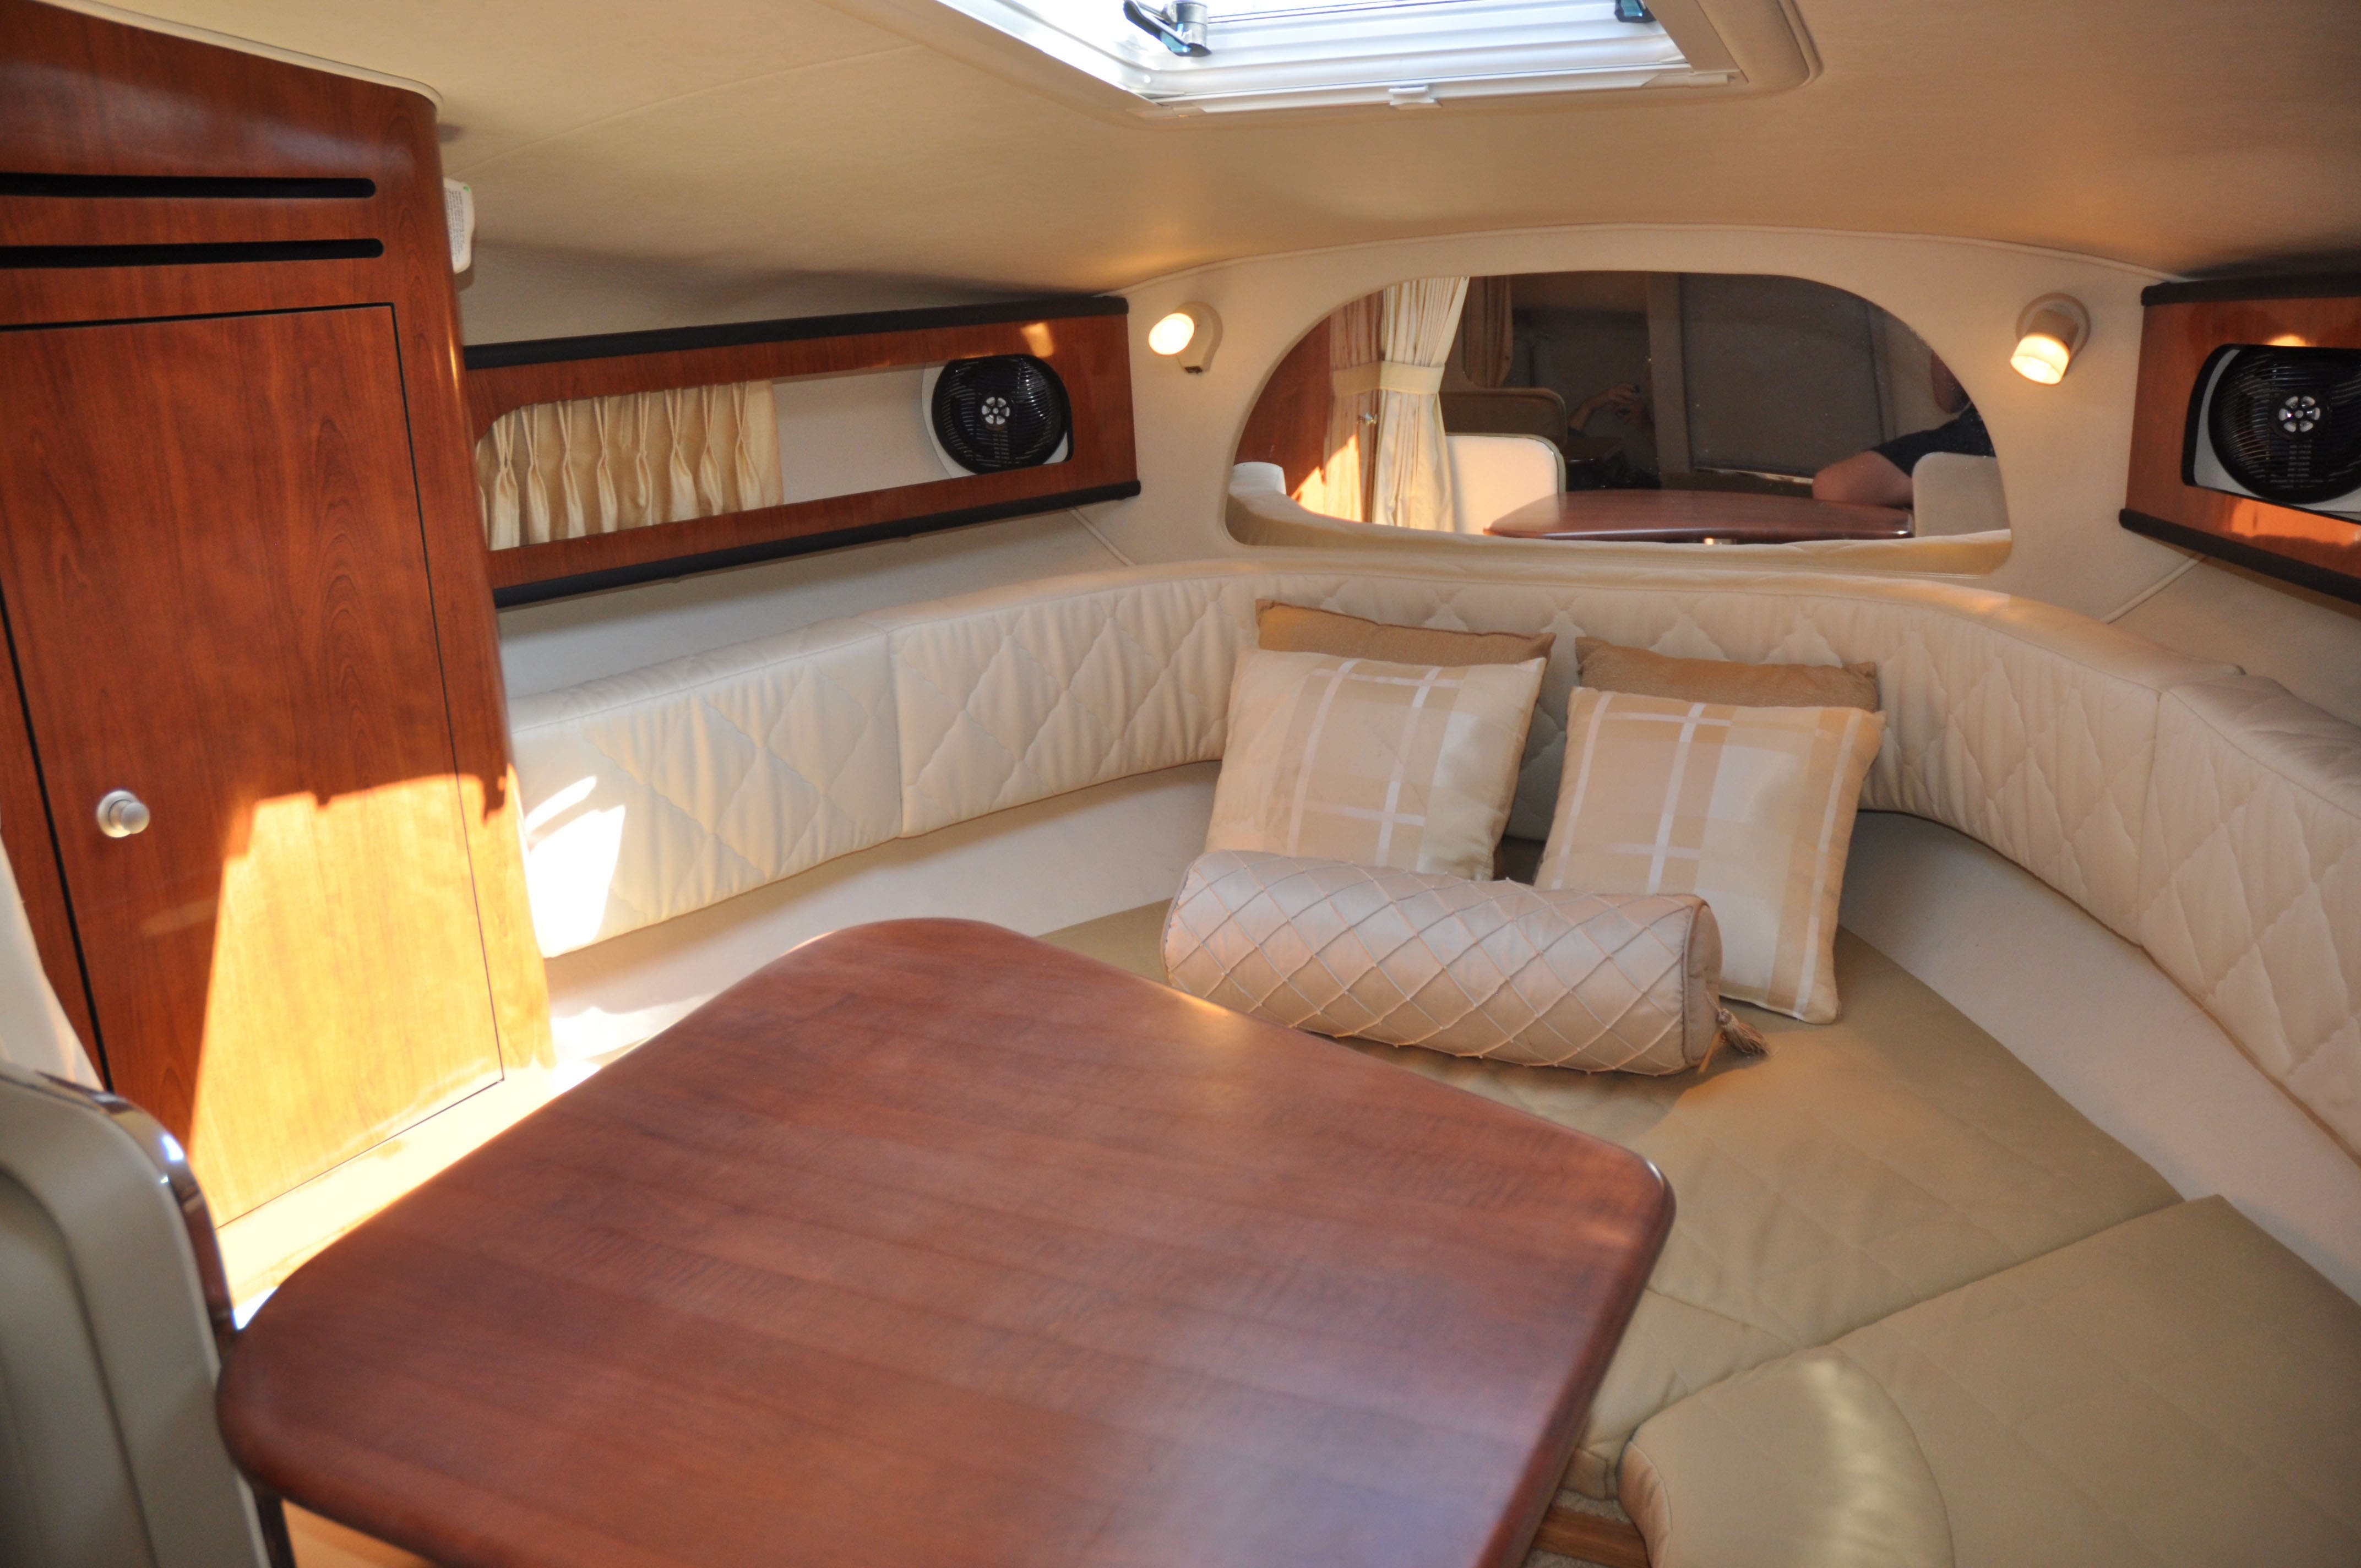 2006 Sea Ray boat for sale, model of the boat is 280 SUNDANCER & Image # 12 of 18